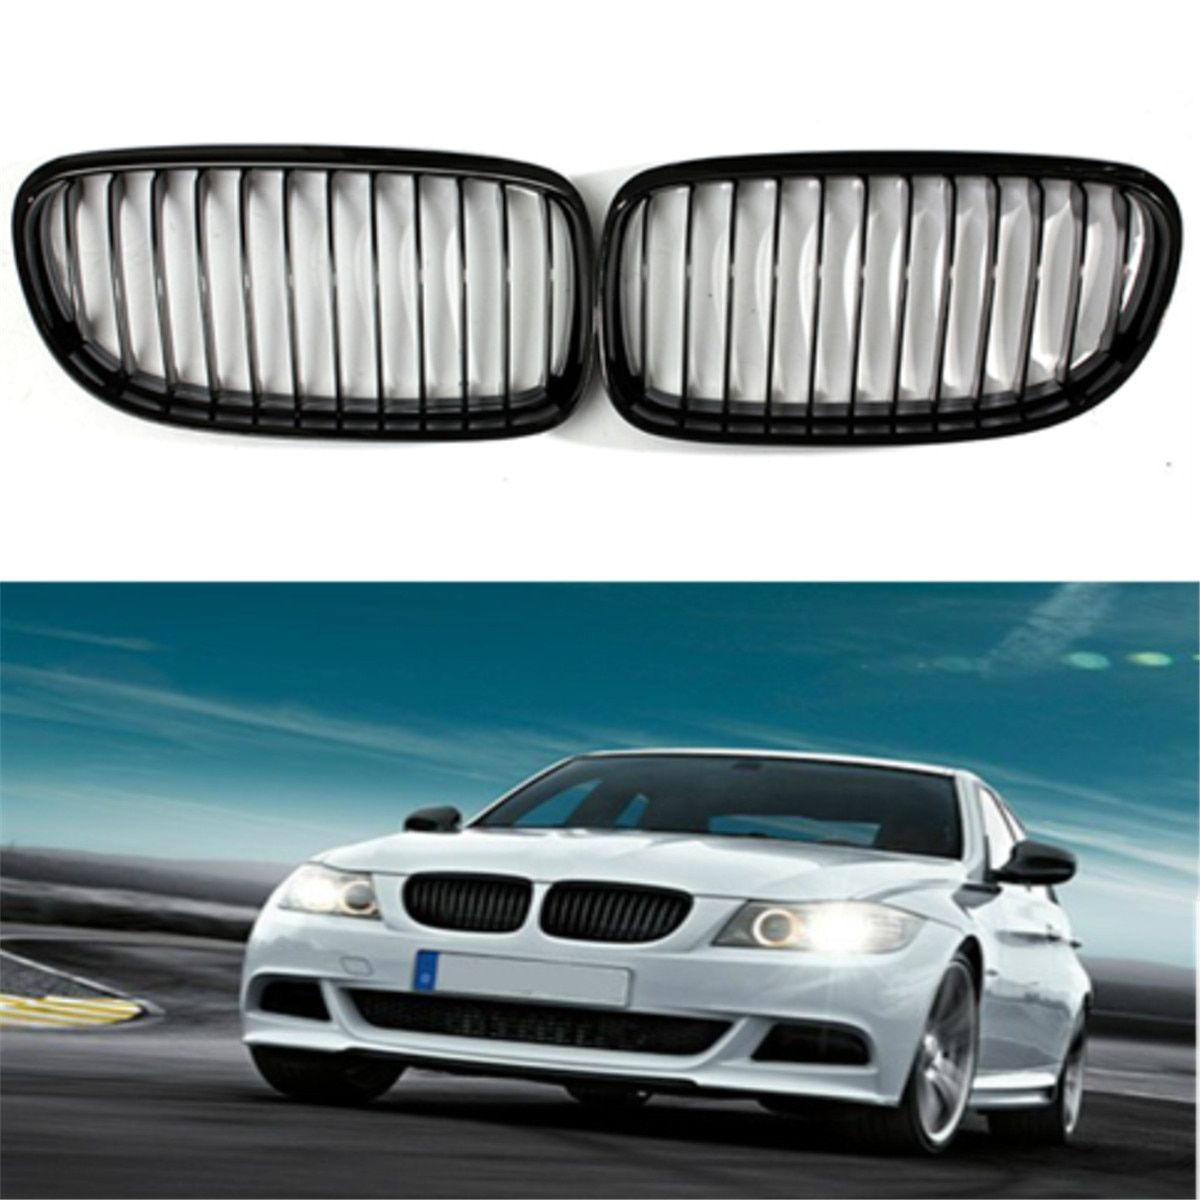 2Pcs Car Front Gloss Black Baking Varnish Hood Kidney Grille Grill For BMW E90 2009 2010 2011 2012 ABS